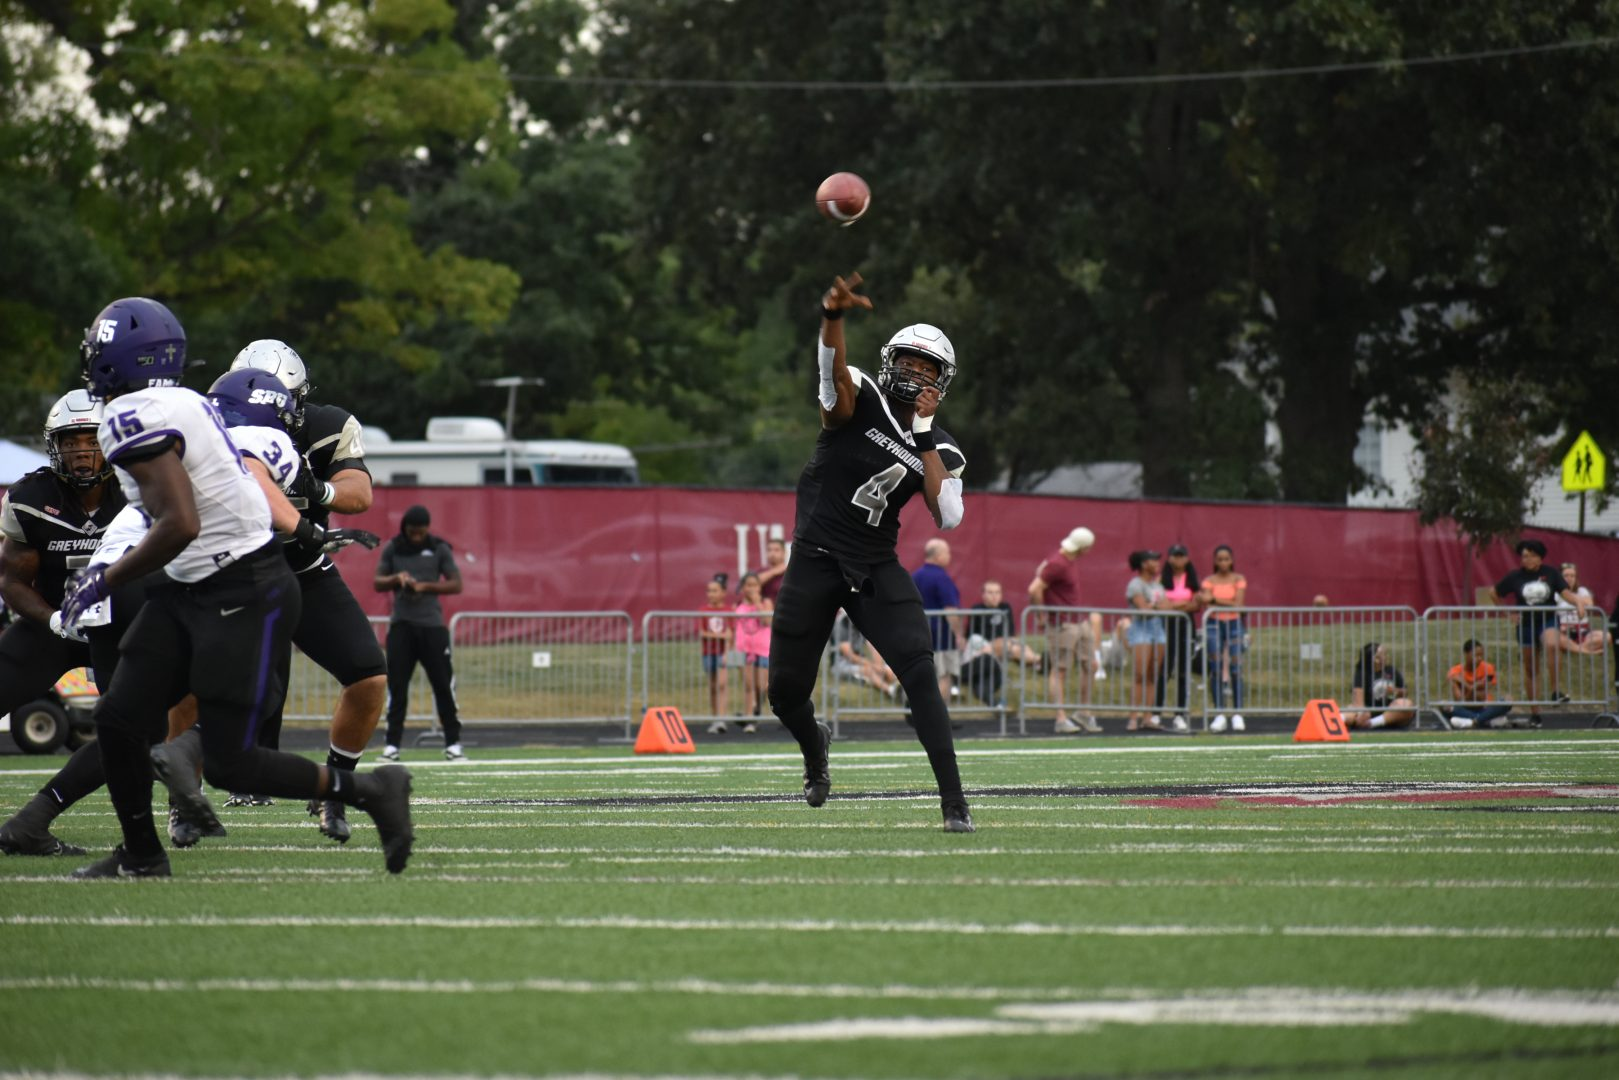 In this file photo, senior quarterback TJ Edwards throws the ball upfield during a home game against the Truman University Bulldogs on Nov. 9, 2019.